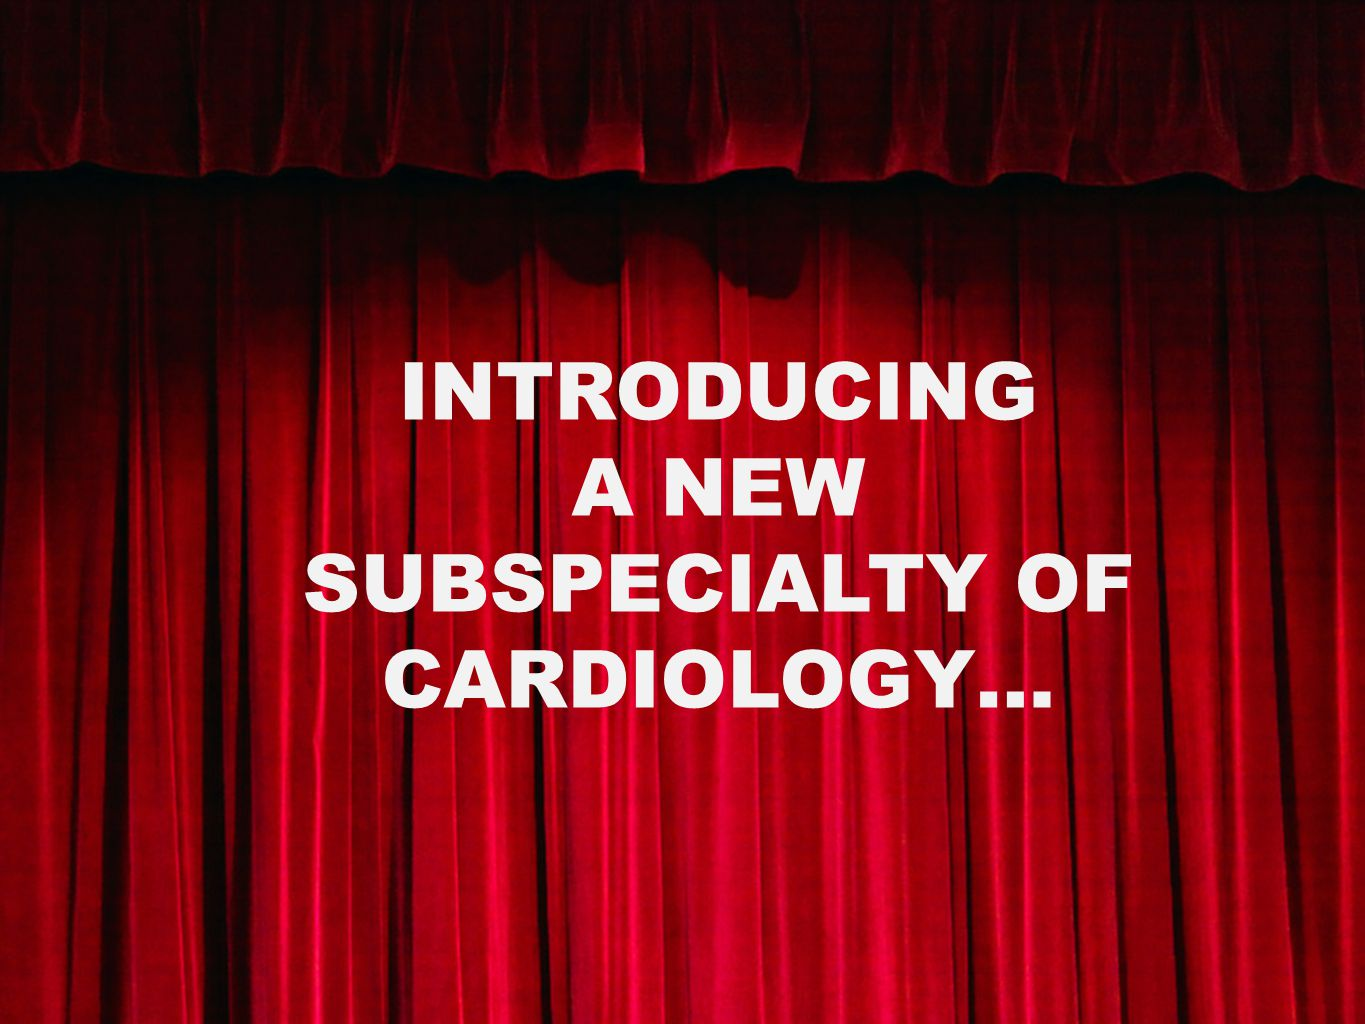 INTRODUCING A NEW SUBSPECIALTY OF CARDIOLOGY…